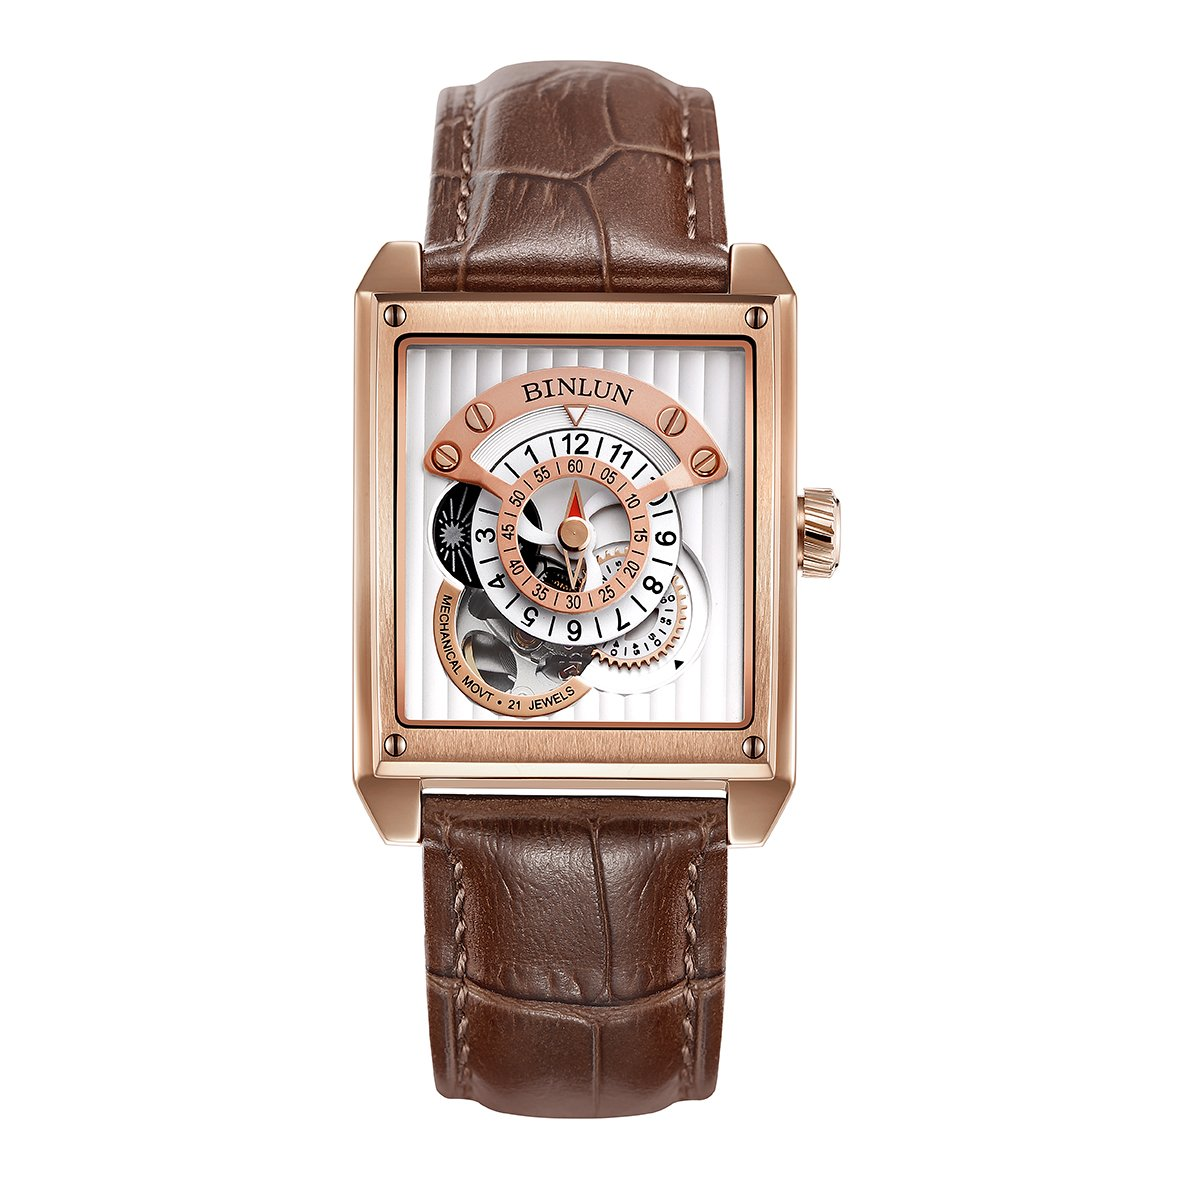 BINLUN Rose Gold Men's Luxury Dress Watches Brown Leather Band Waterproof Rectangle Automatic Watch